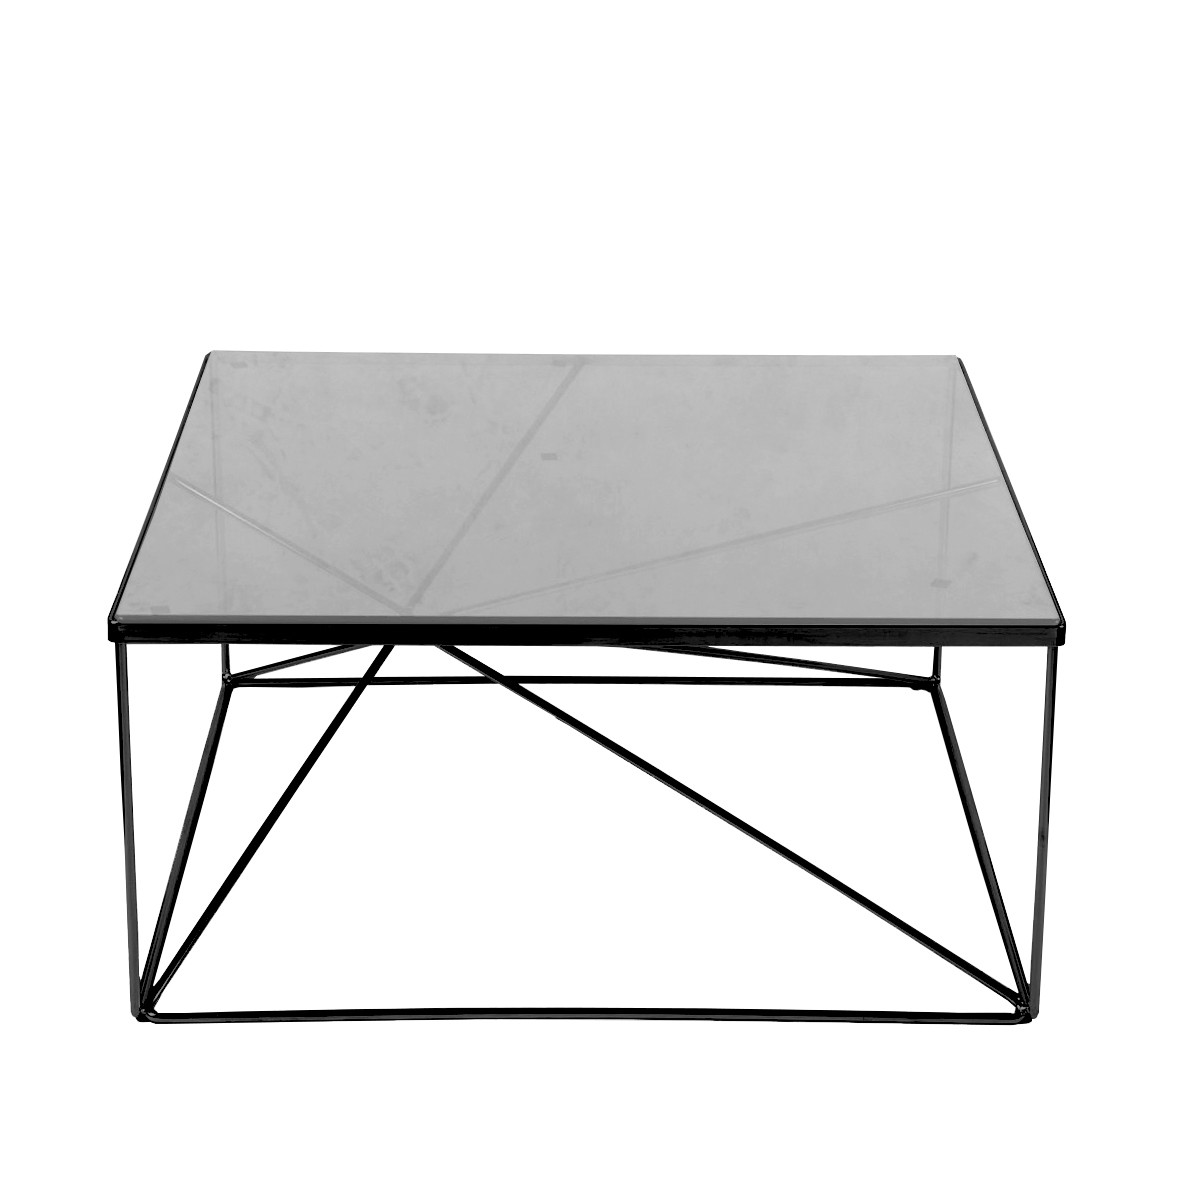 black coffee table. SKU #CUDI1545 Willow Black Coffee Table Is Also Sometimes Listed Under The Following Manufacturer Numbers: CT-JIM-LEXI-BLAC